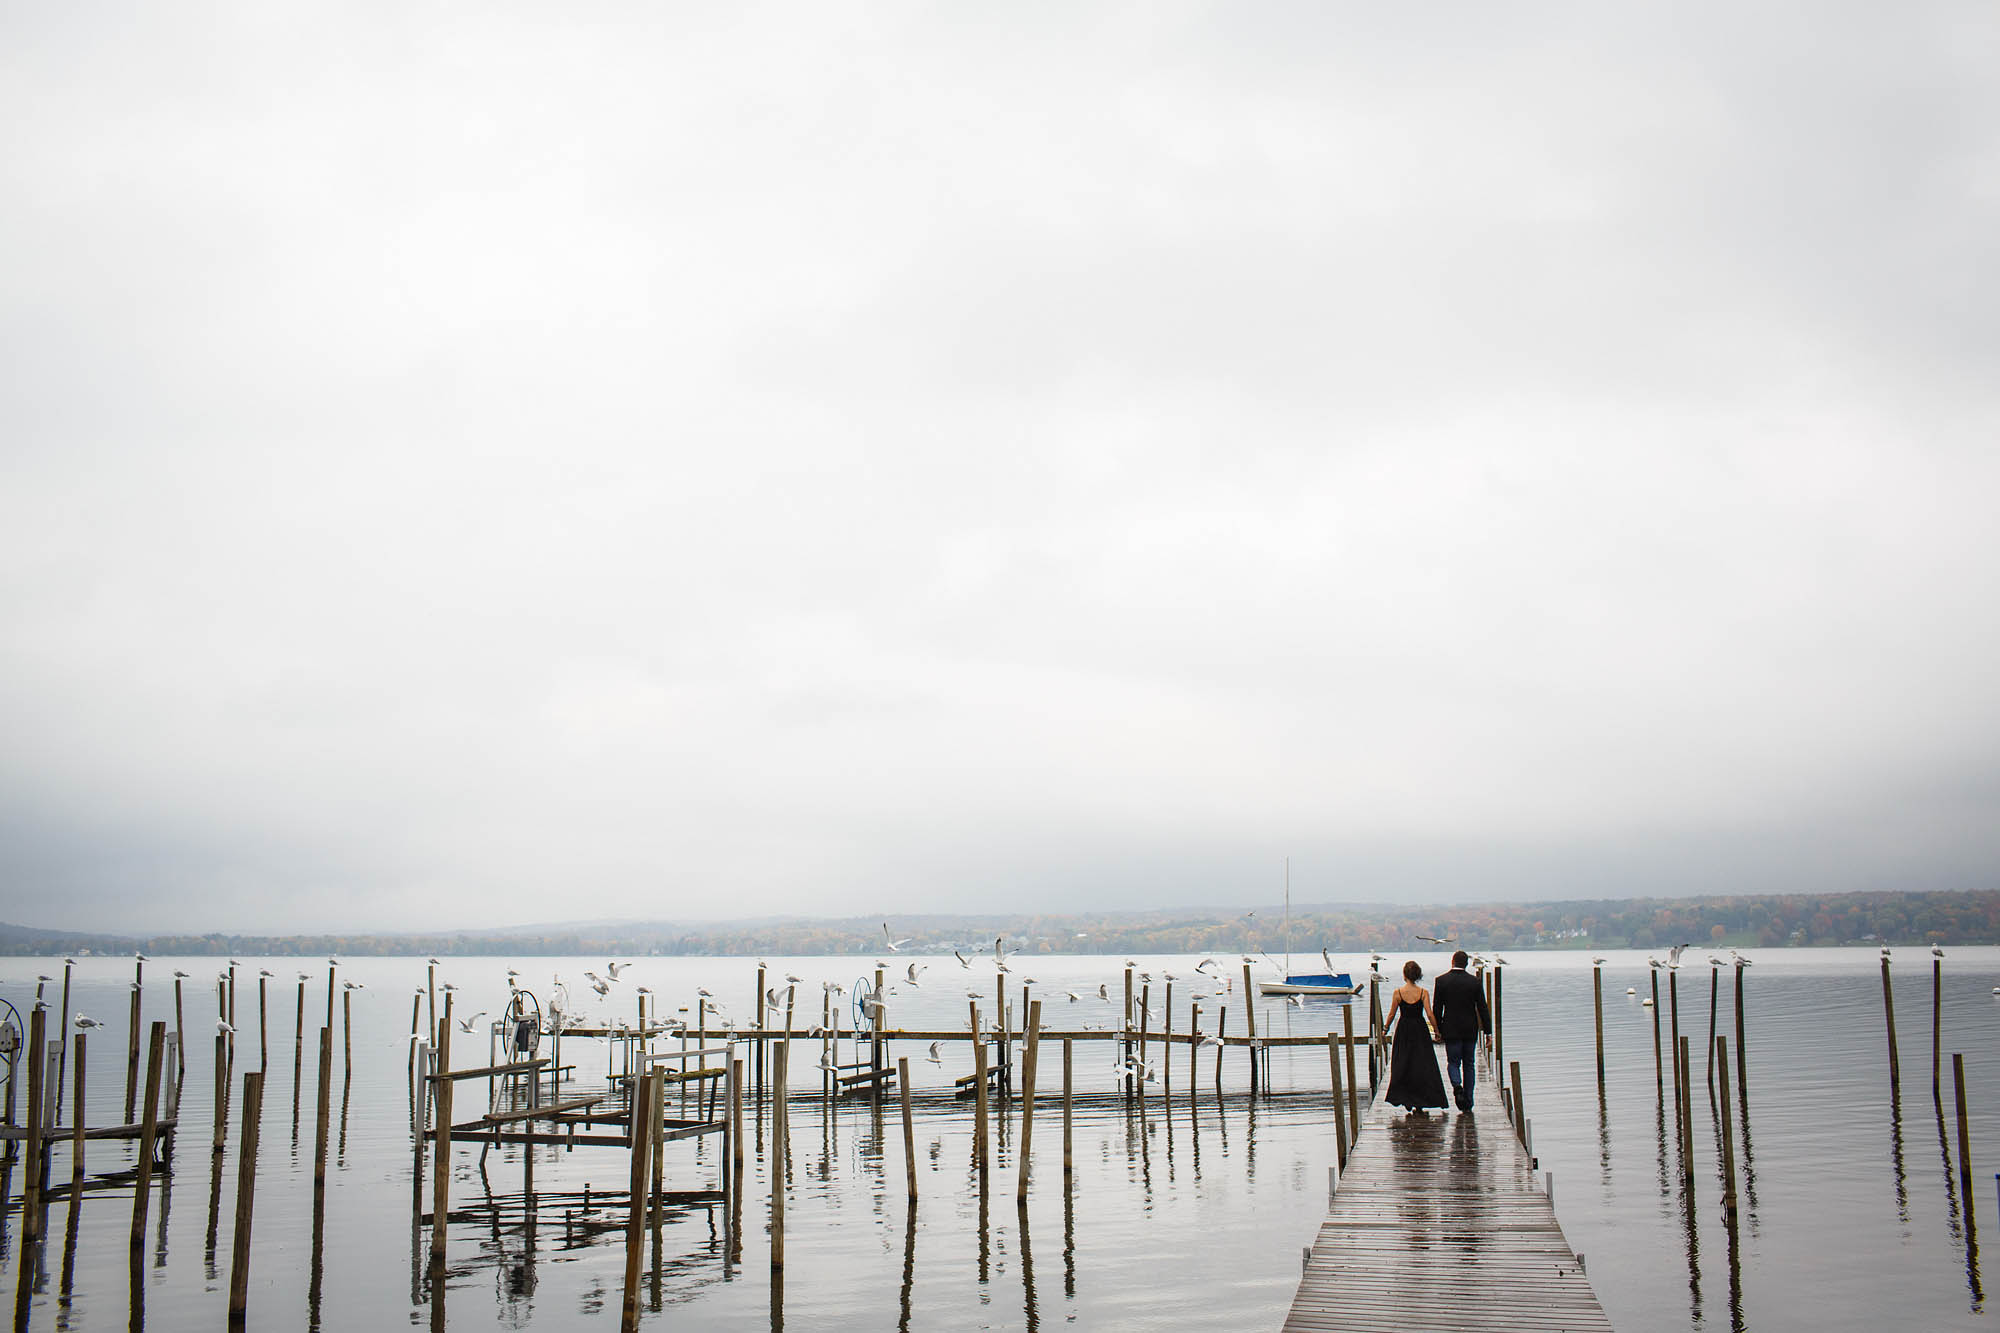 Couple walks out into the dock in the rain during their engagement photo session in Chautauqua, New York.